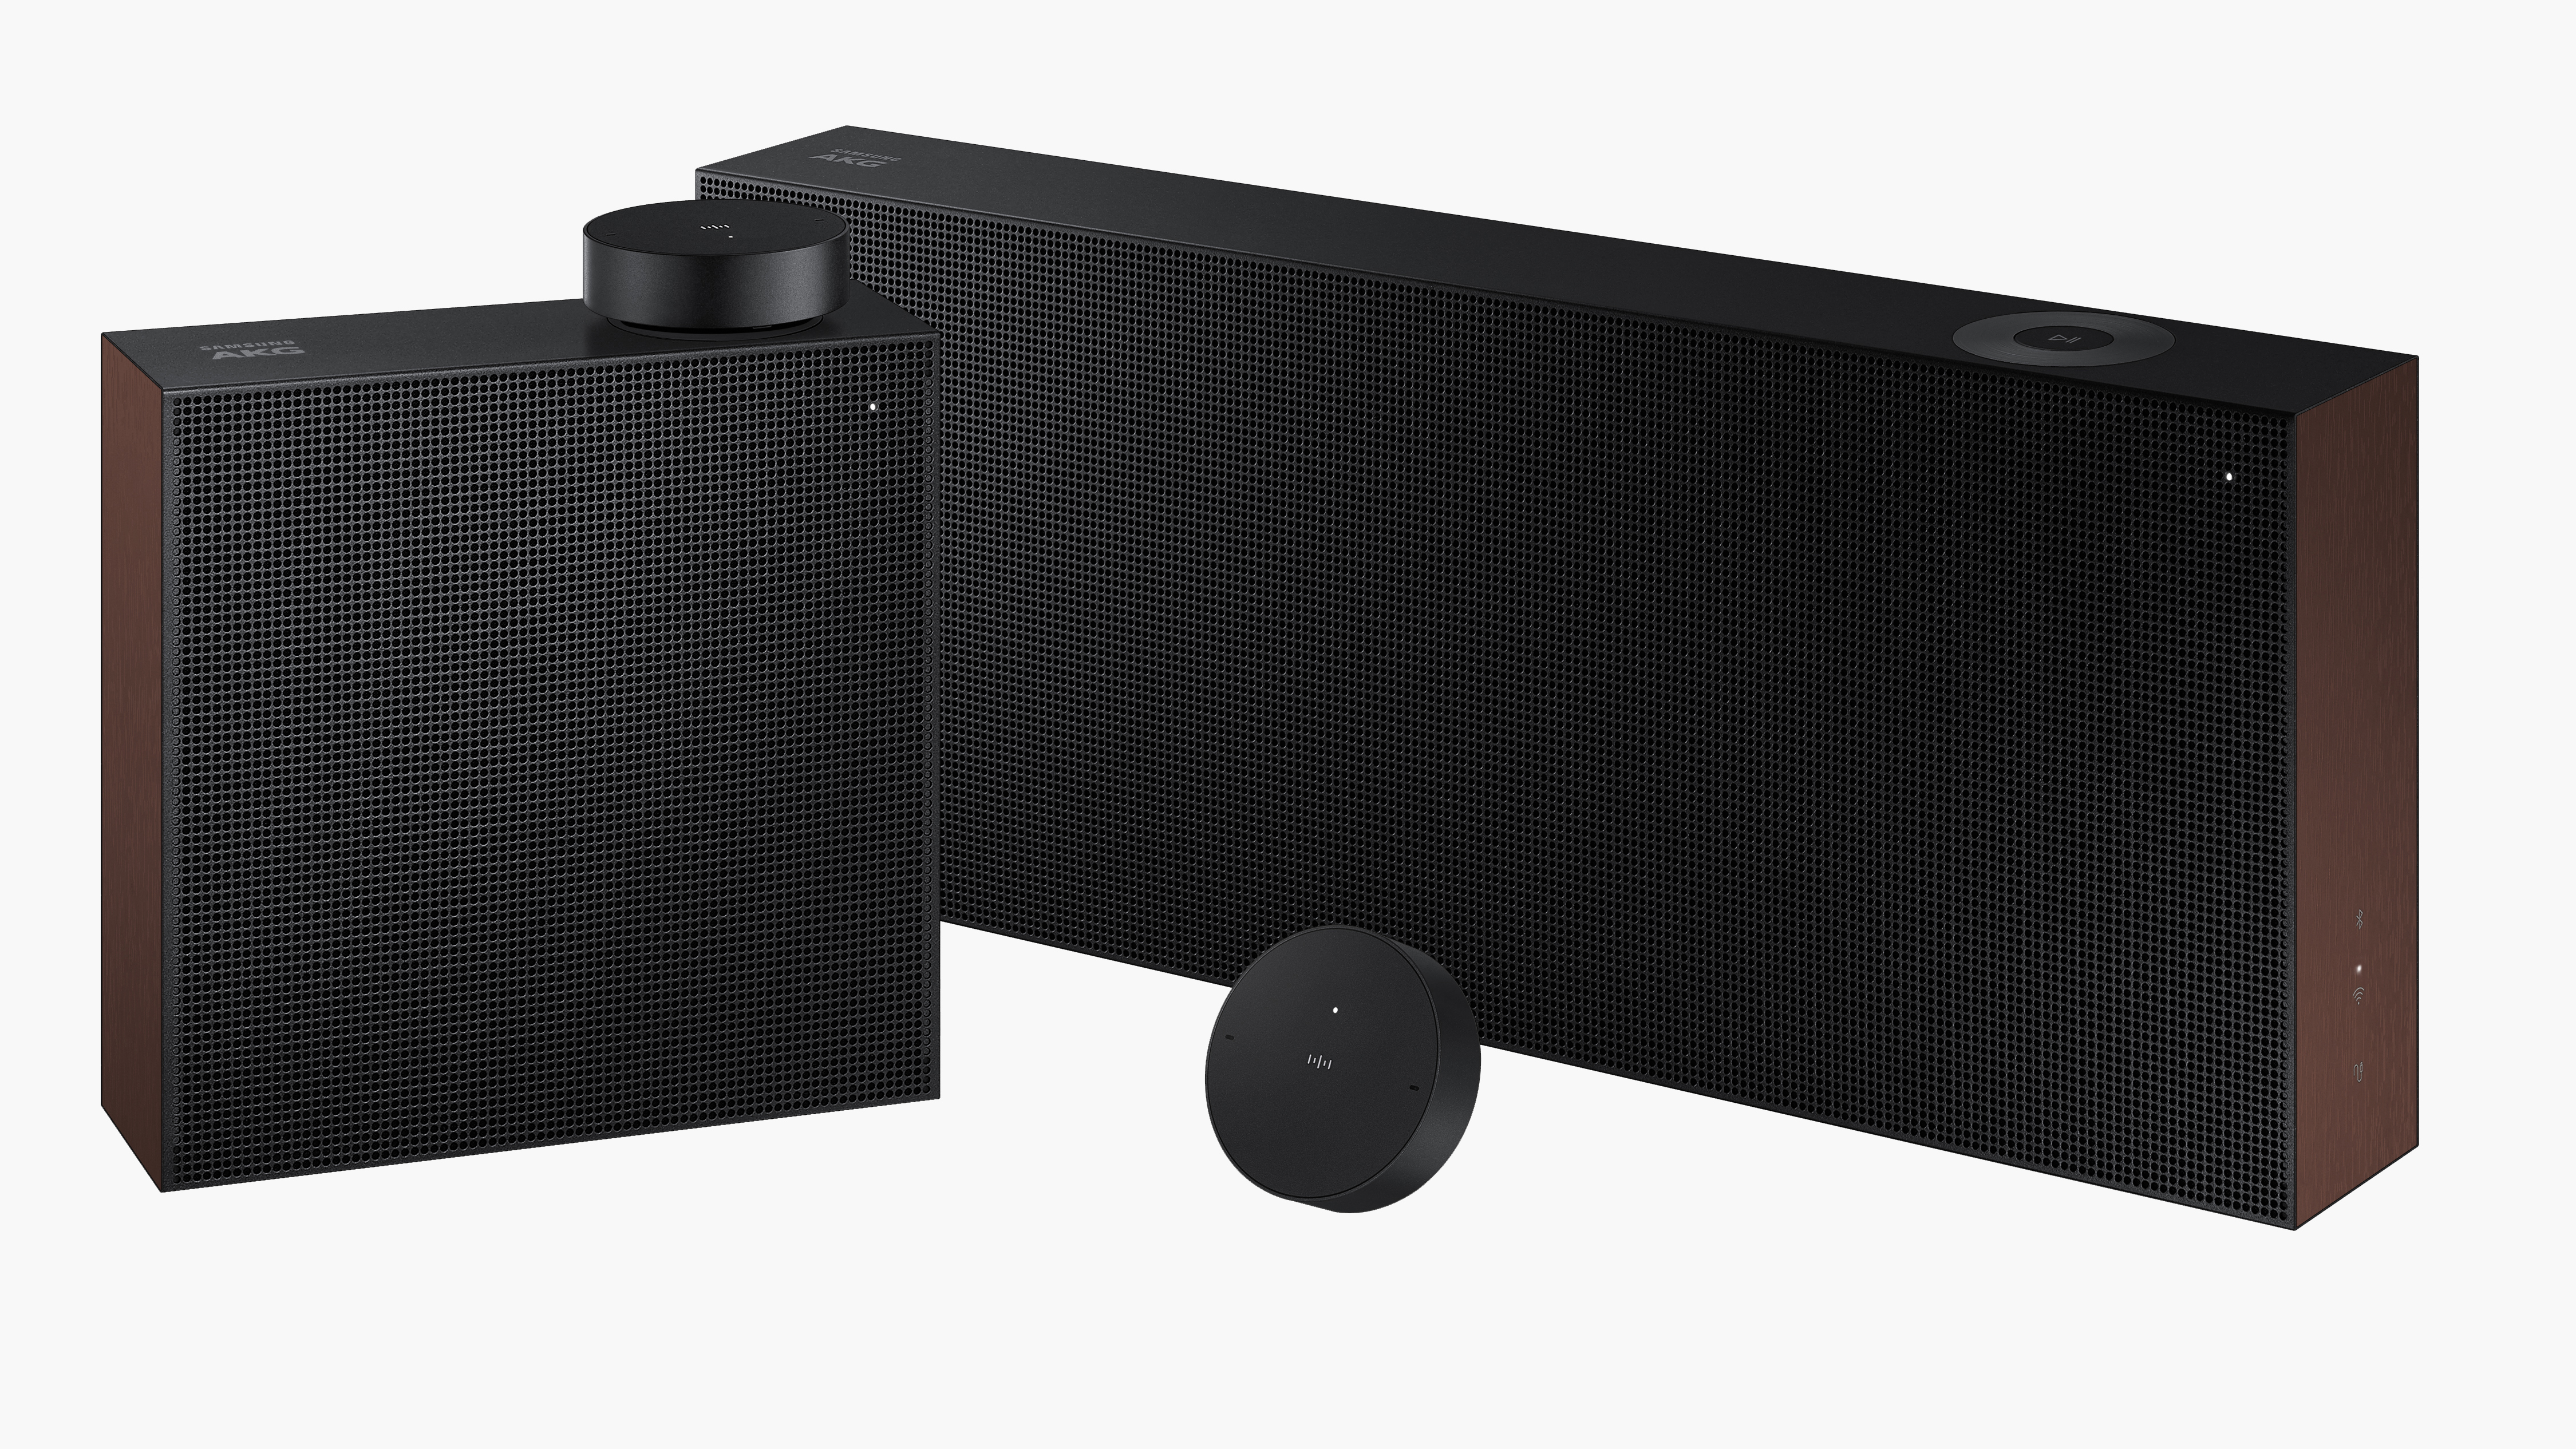 Samsung VL550 speaker review: How it compares to the Amazon